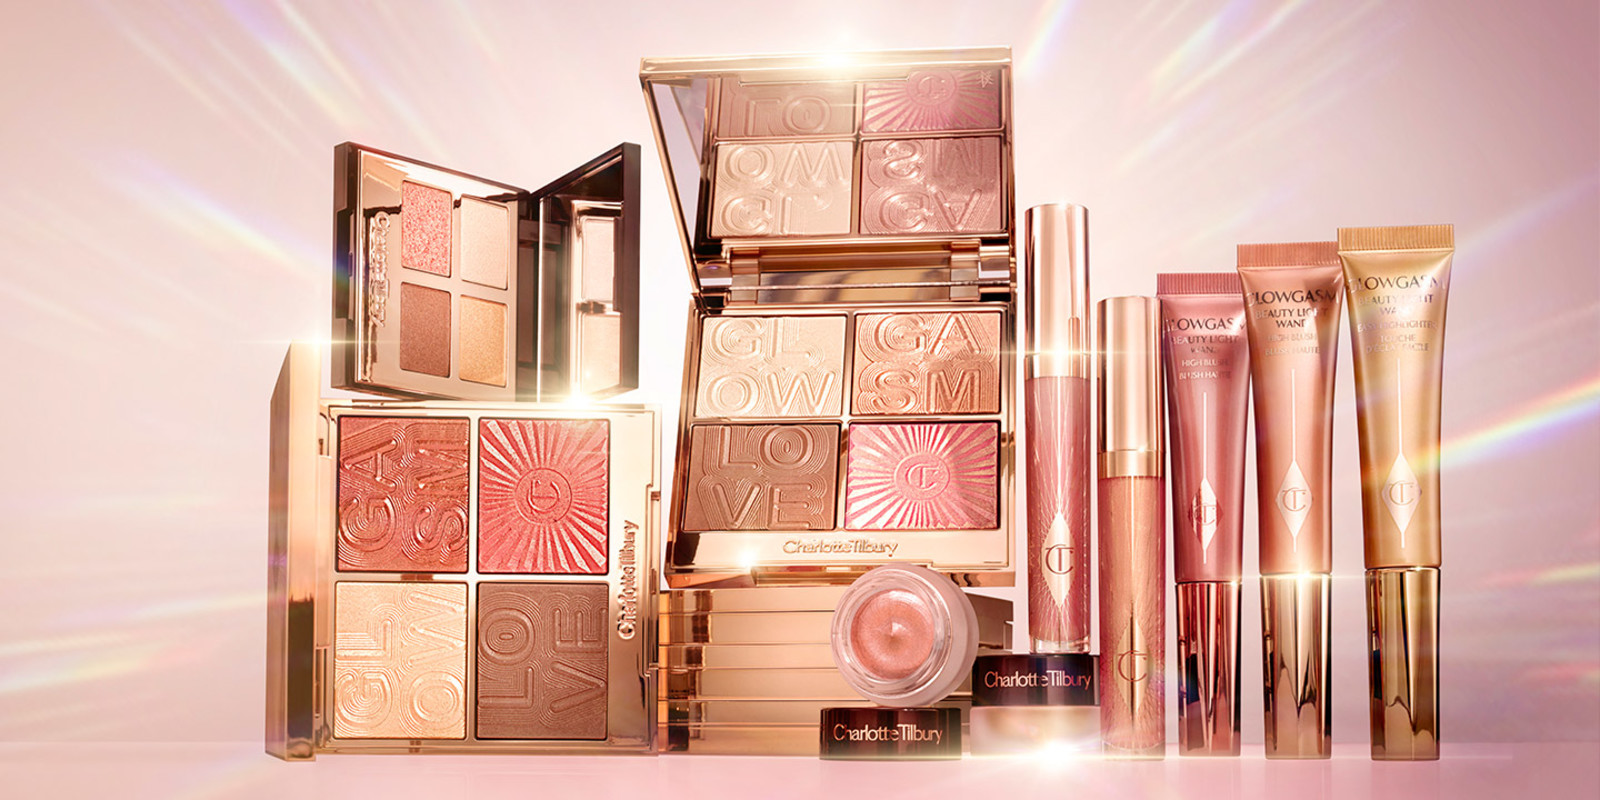 Glowgasm collection products